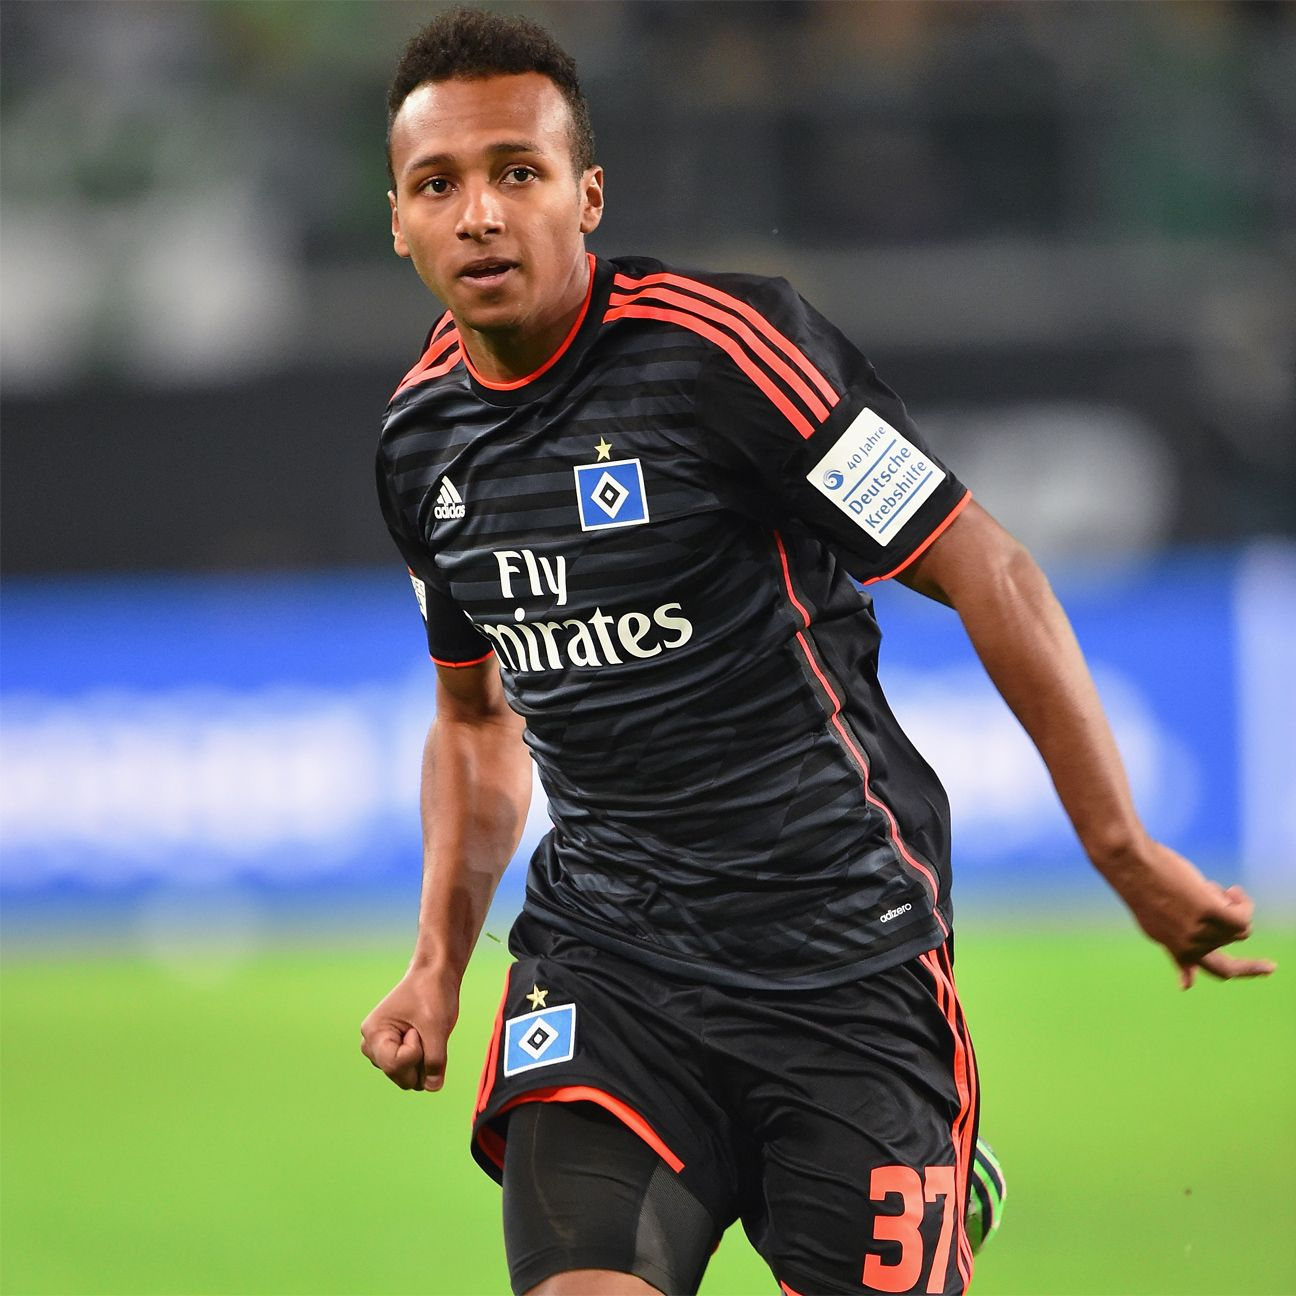 The appearances have been few and far between for Julian Green at Hamburg.